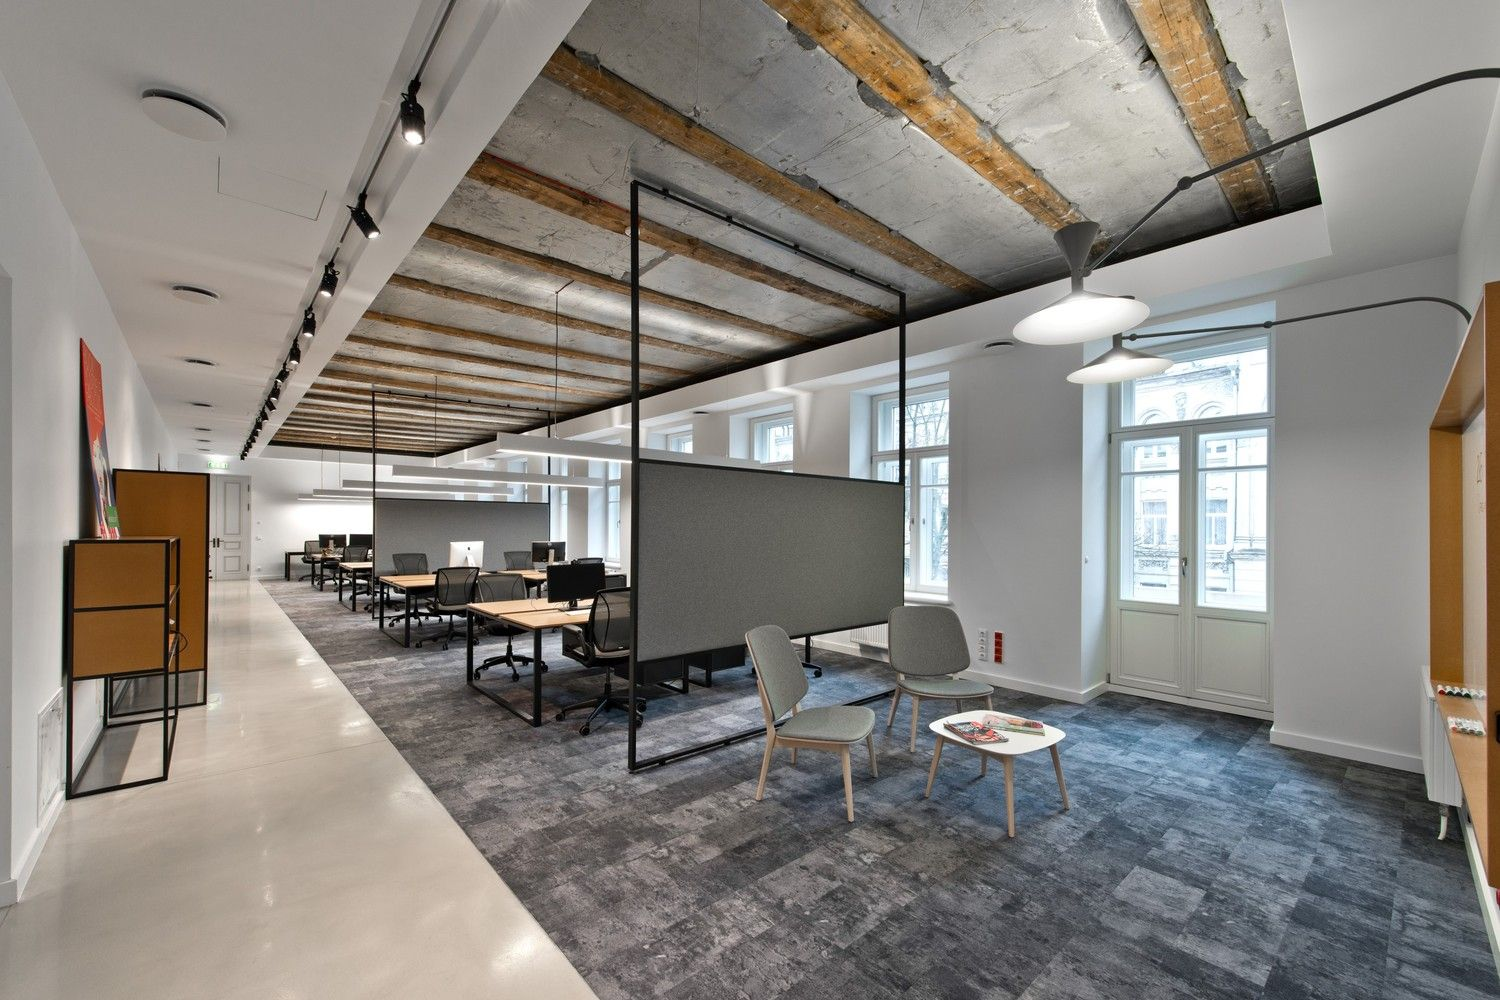 Gallery of Treatwell Office Plazma Architecture